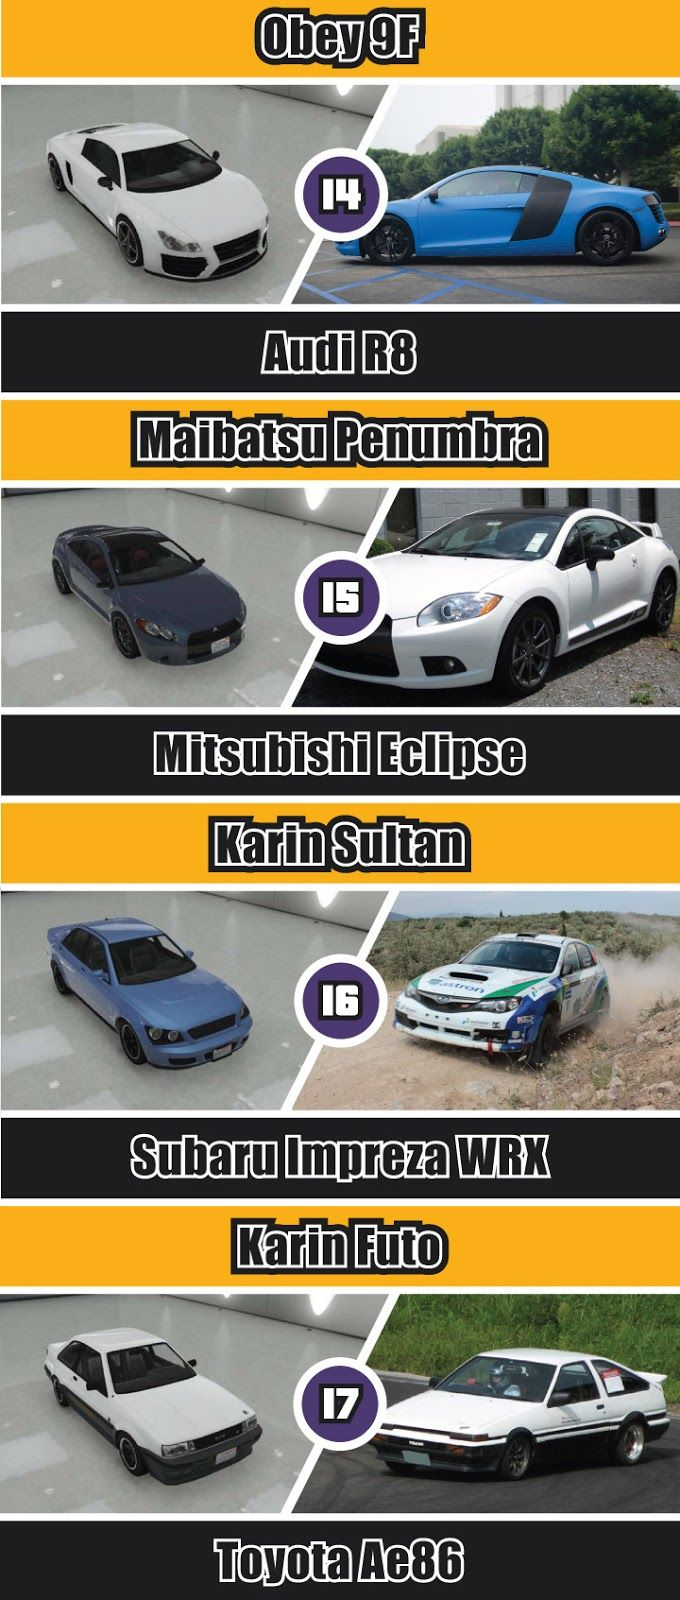 Gta V Cars And Their Real Life Counterparts Infographic Carhoots Gta Cars Gta Gta 5